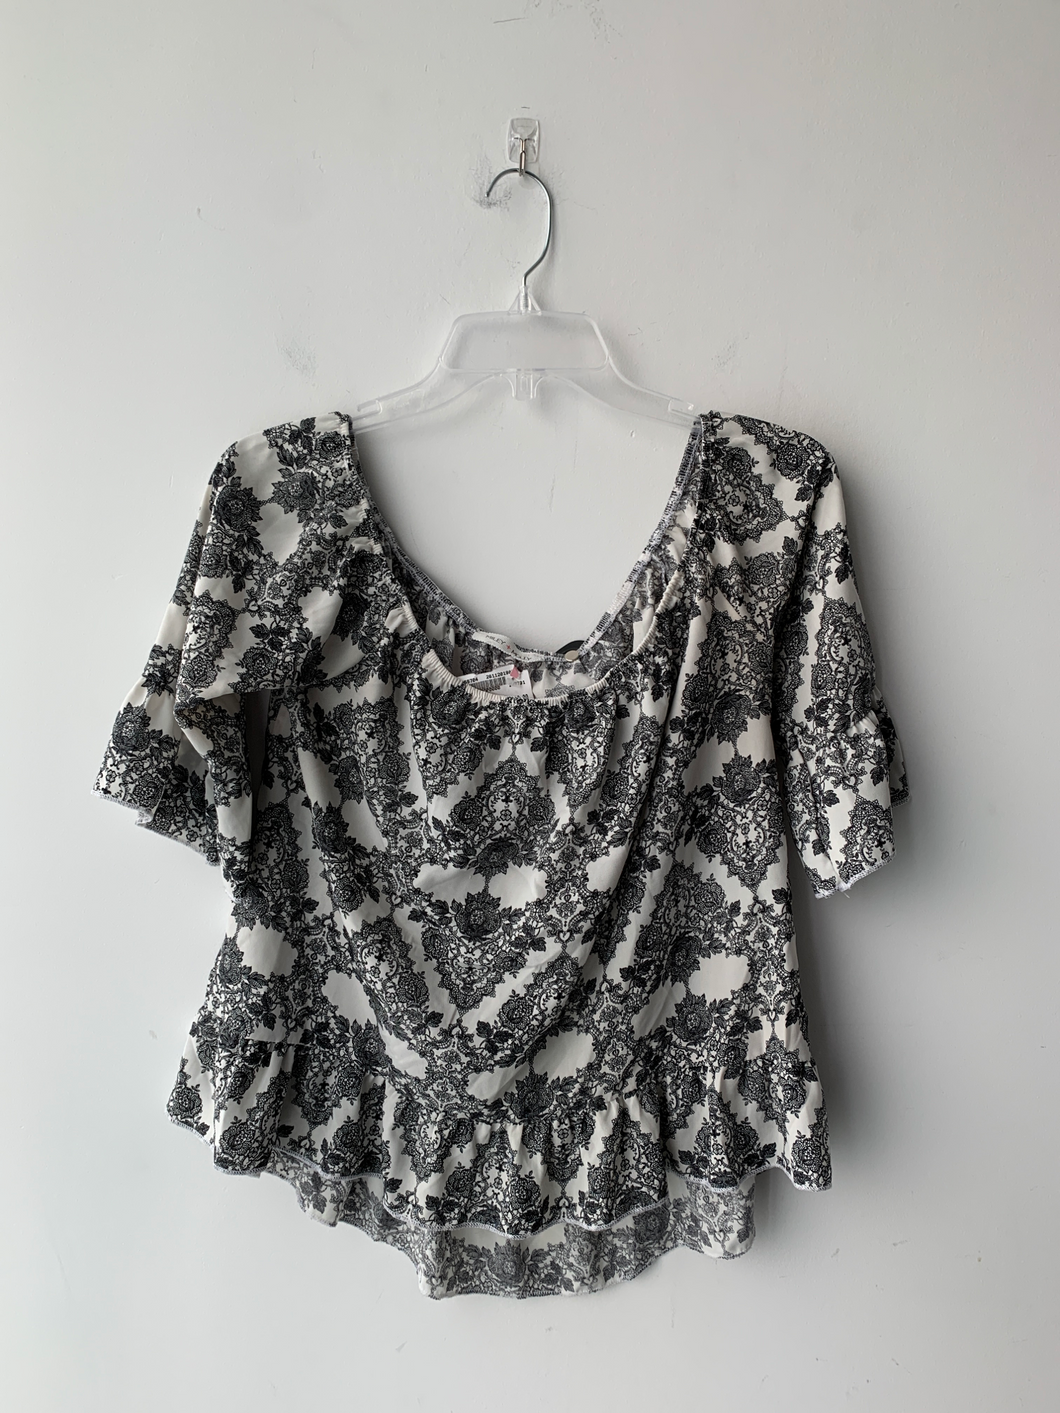 Long Sleeve Top Size Medium